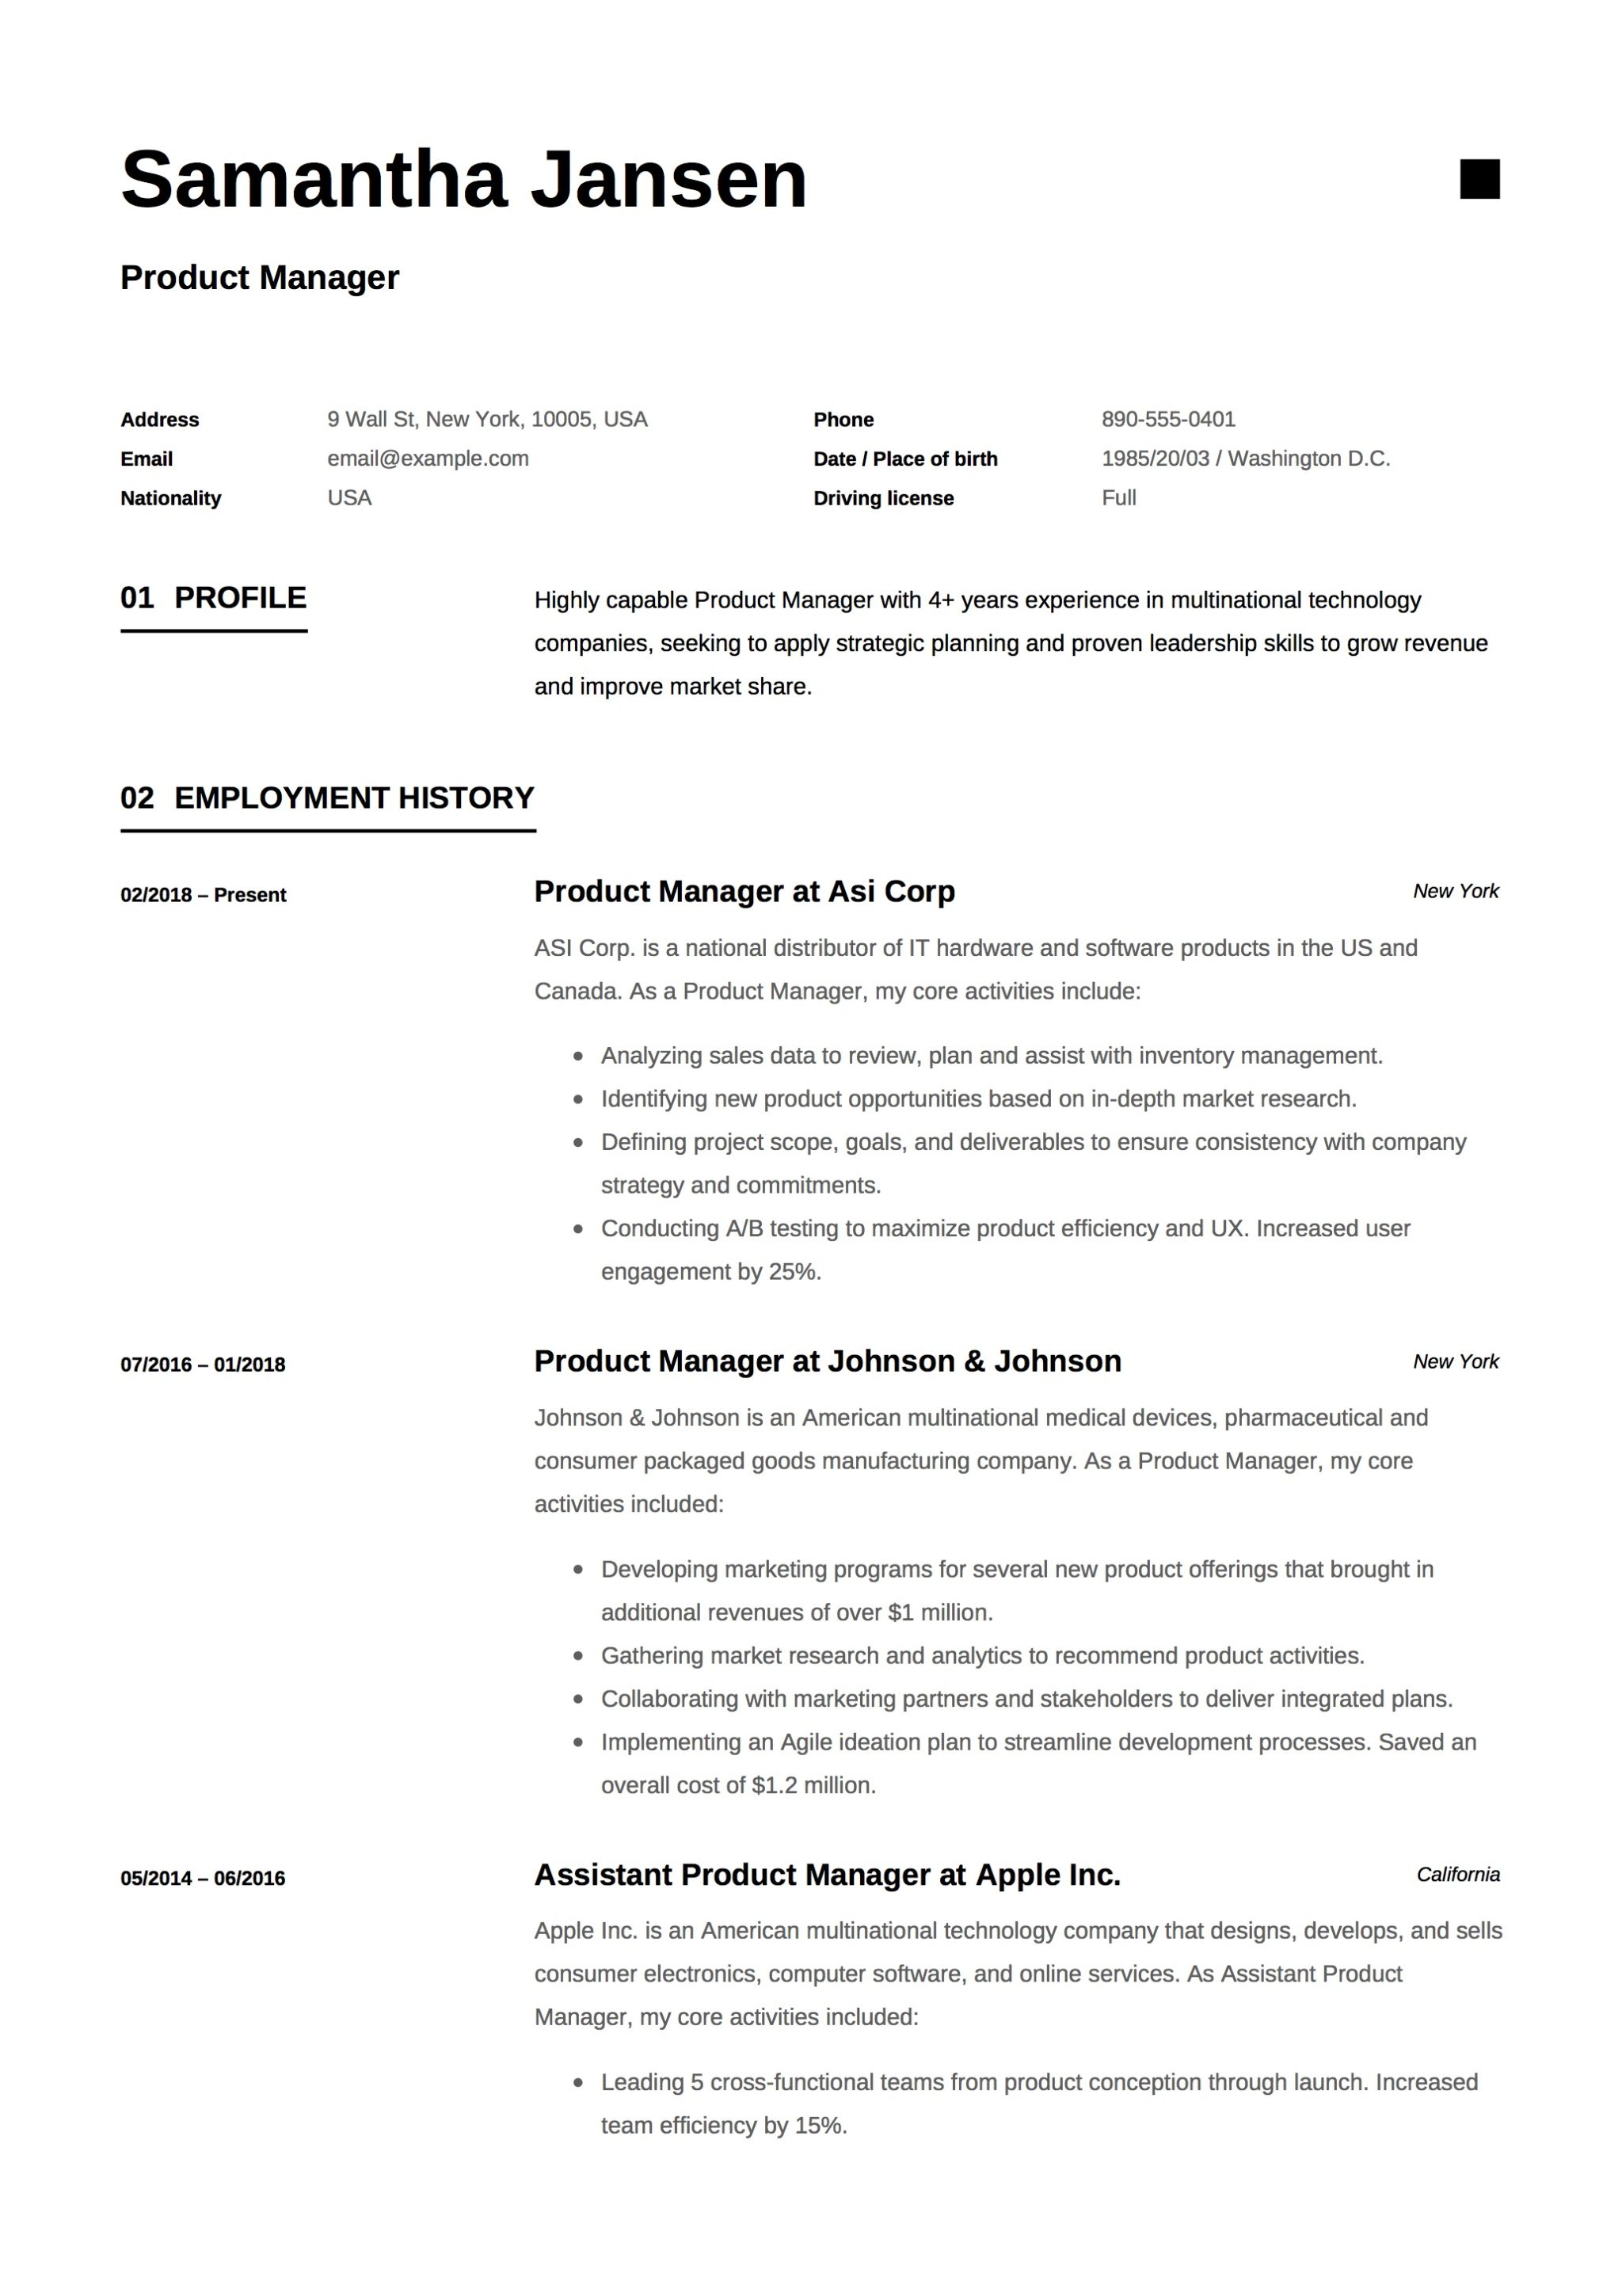 12 Product Manager Resume Sample(s) - 2018 (Free Downloads)